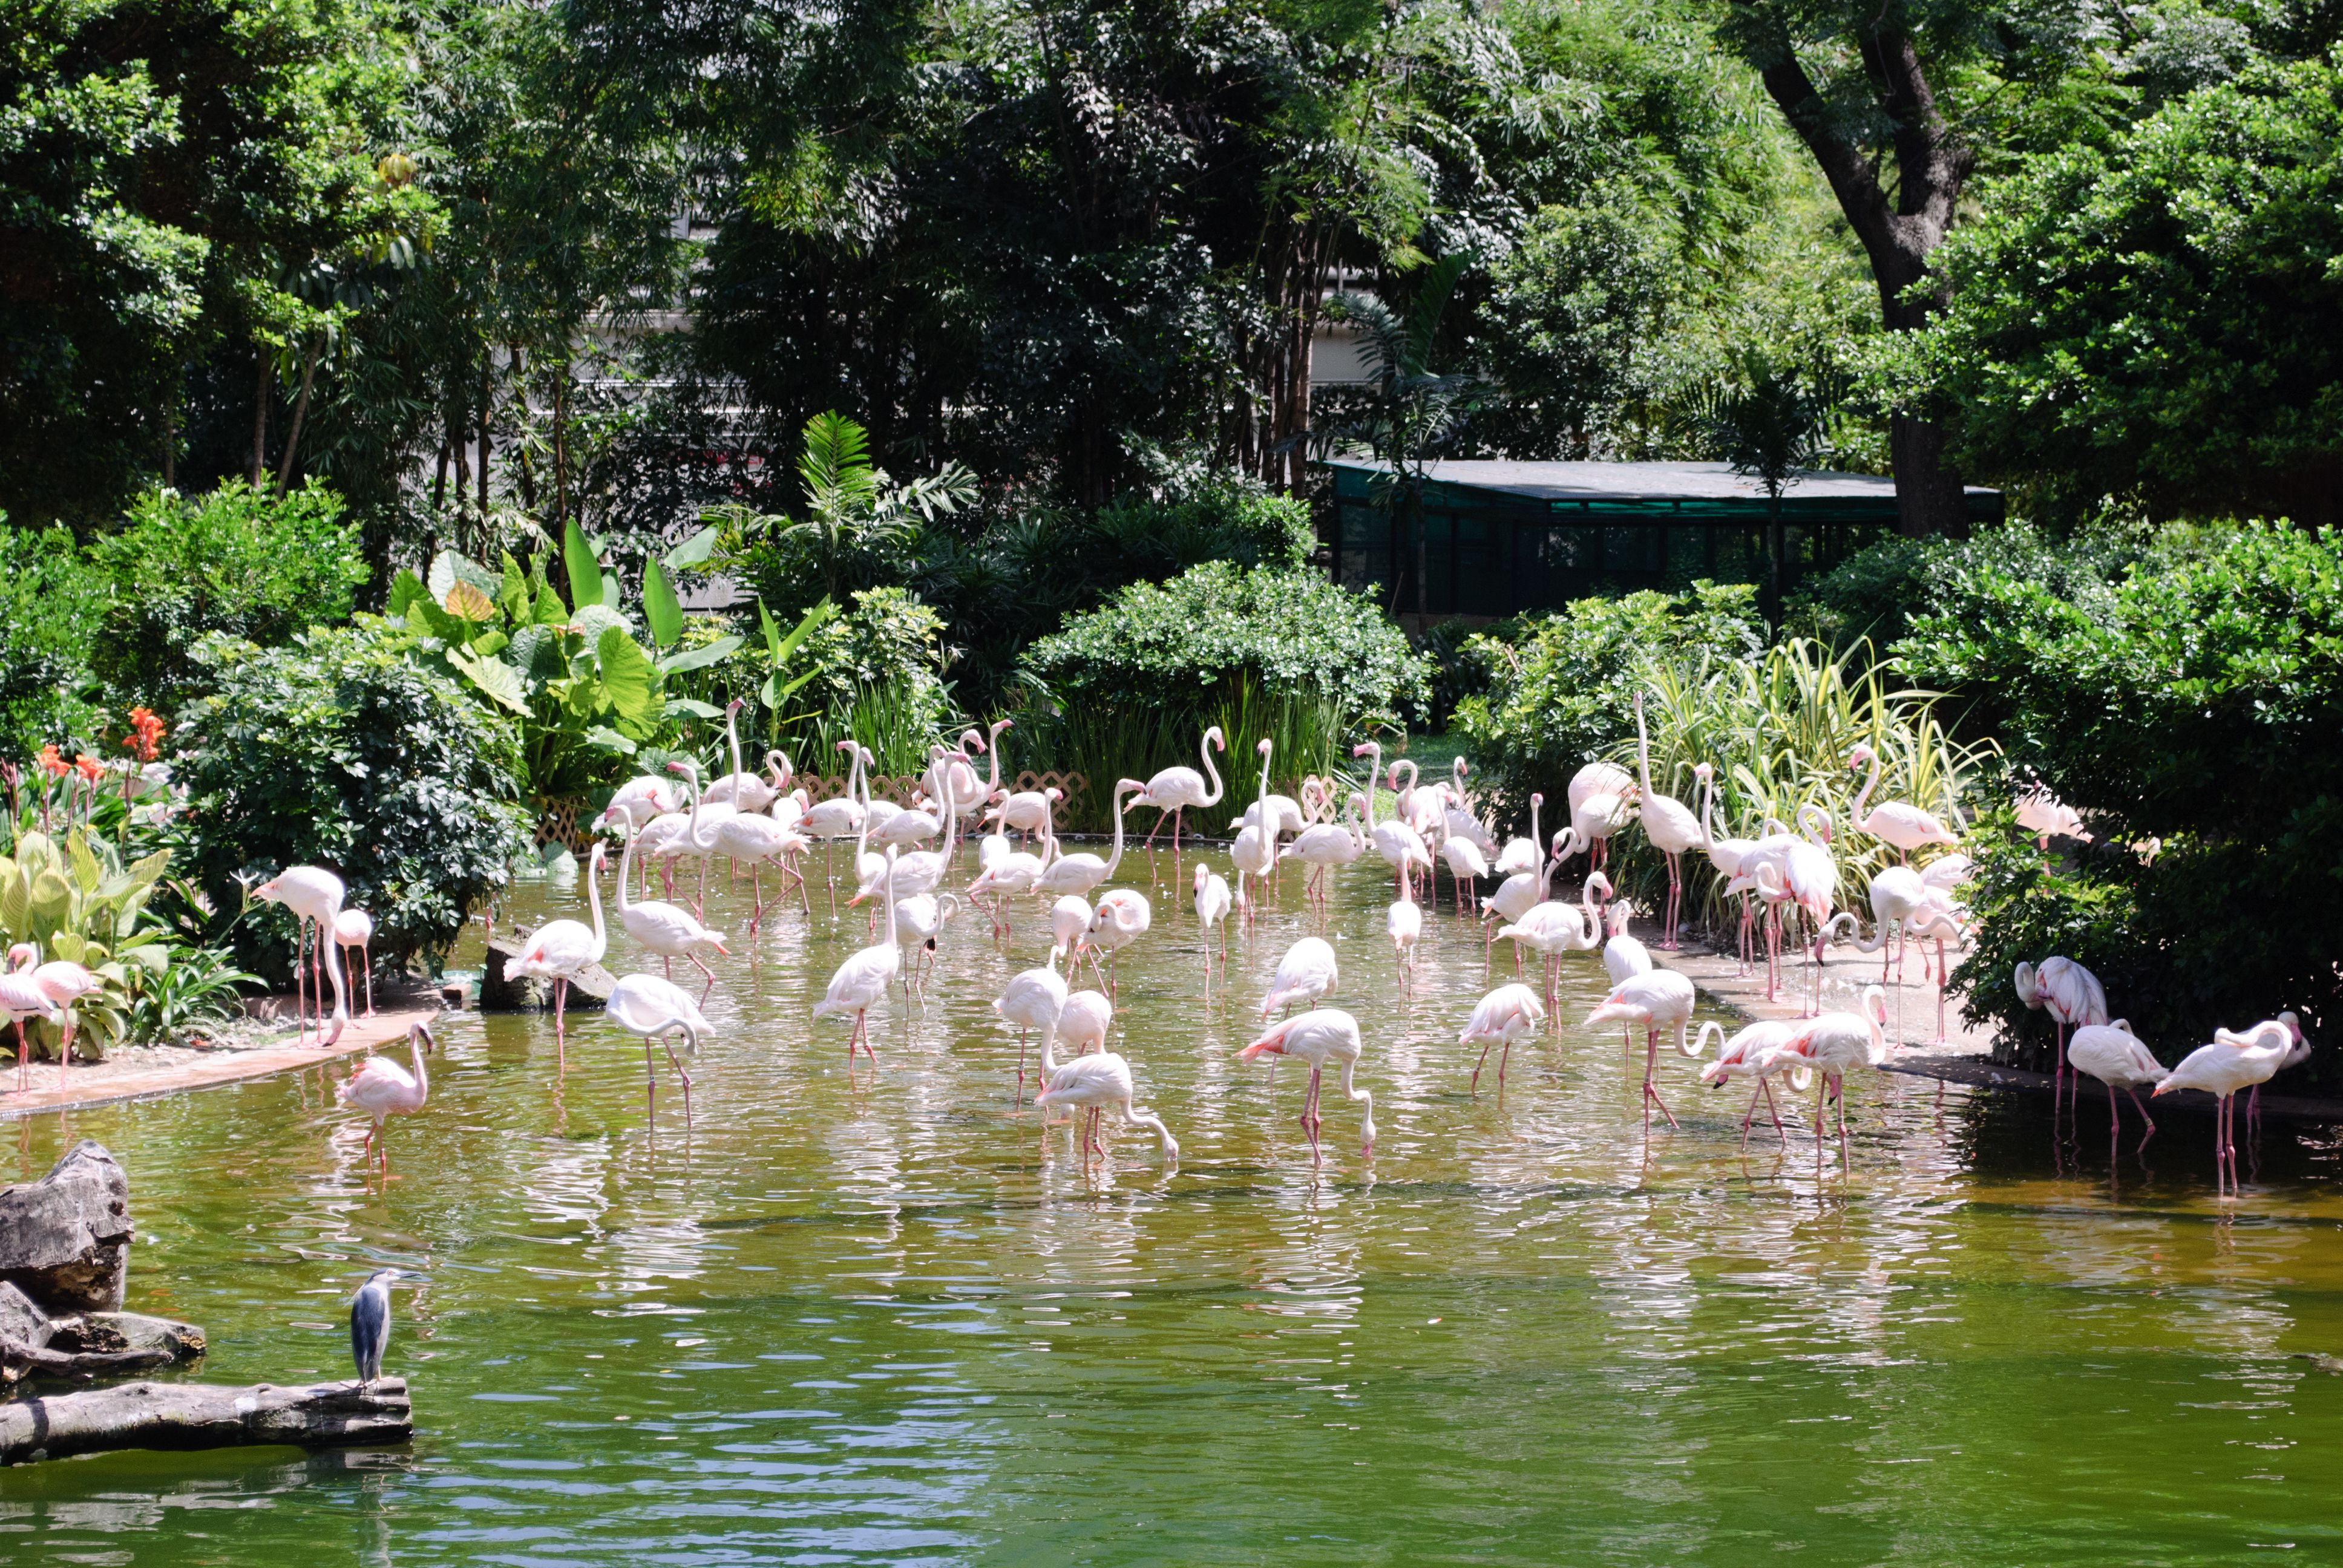 Tourist Guide To Kowloon Park In Hong Kong